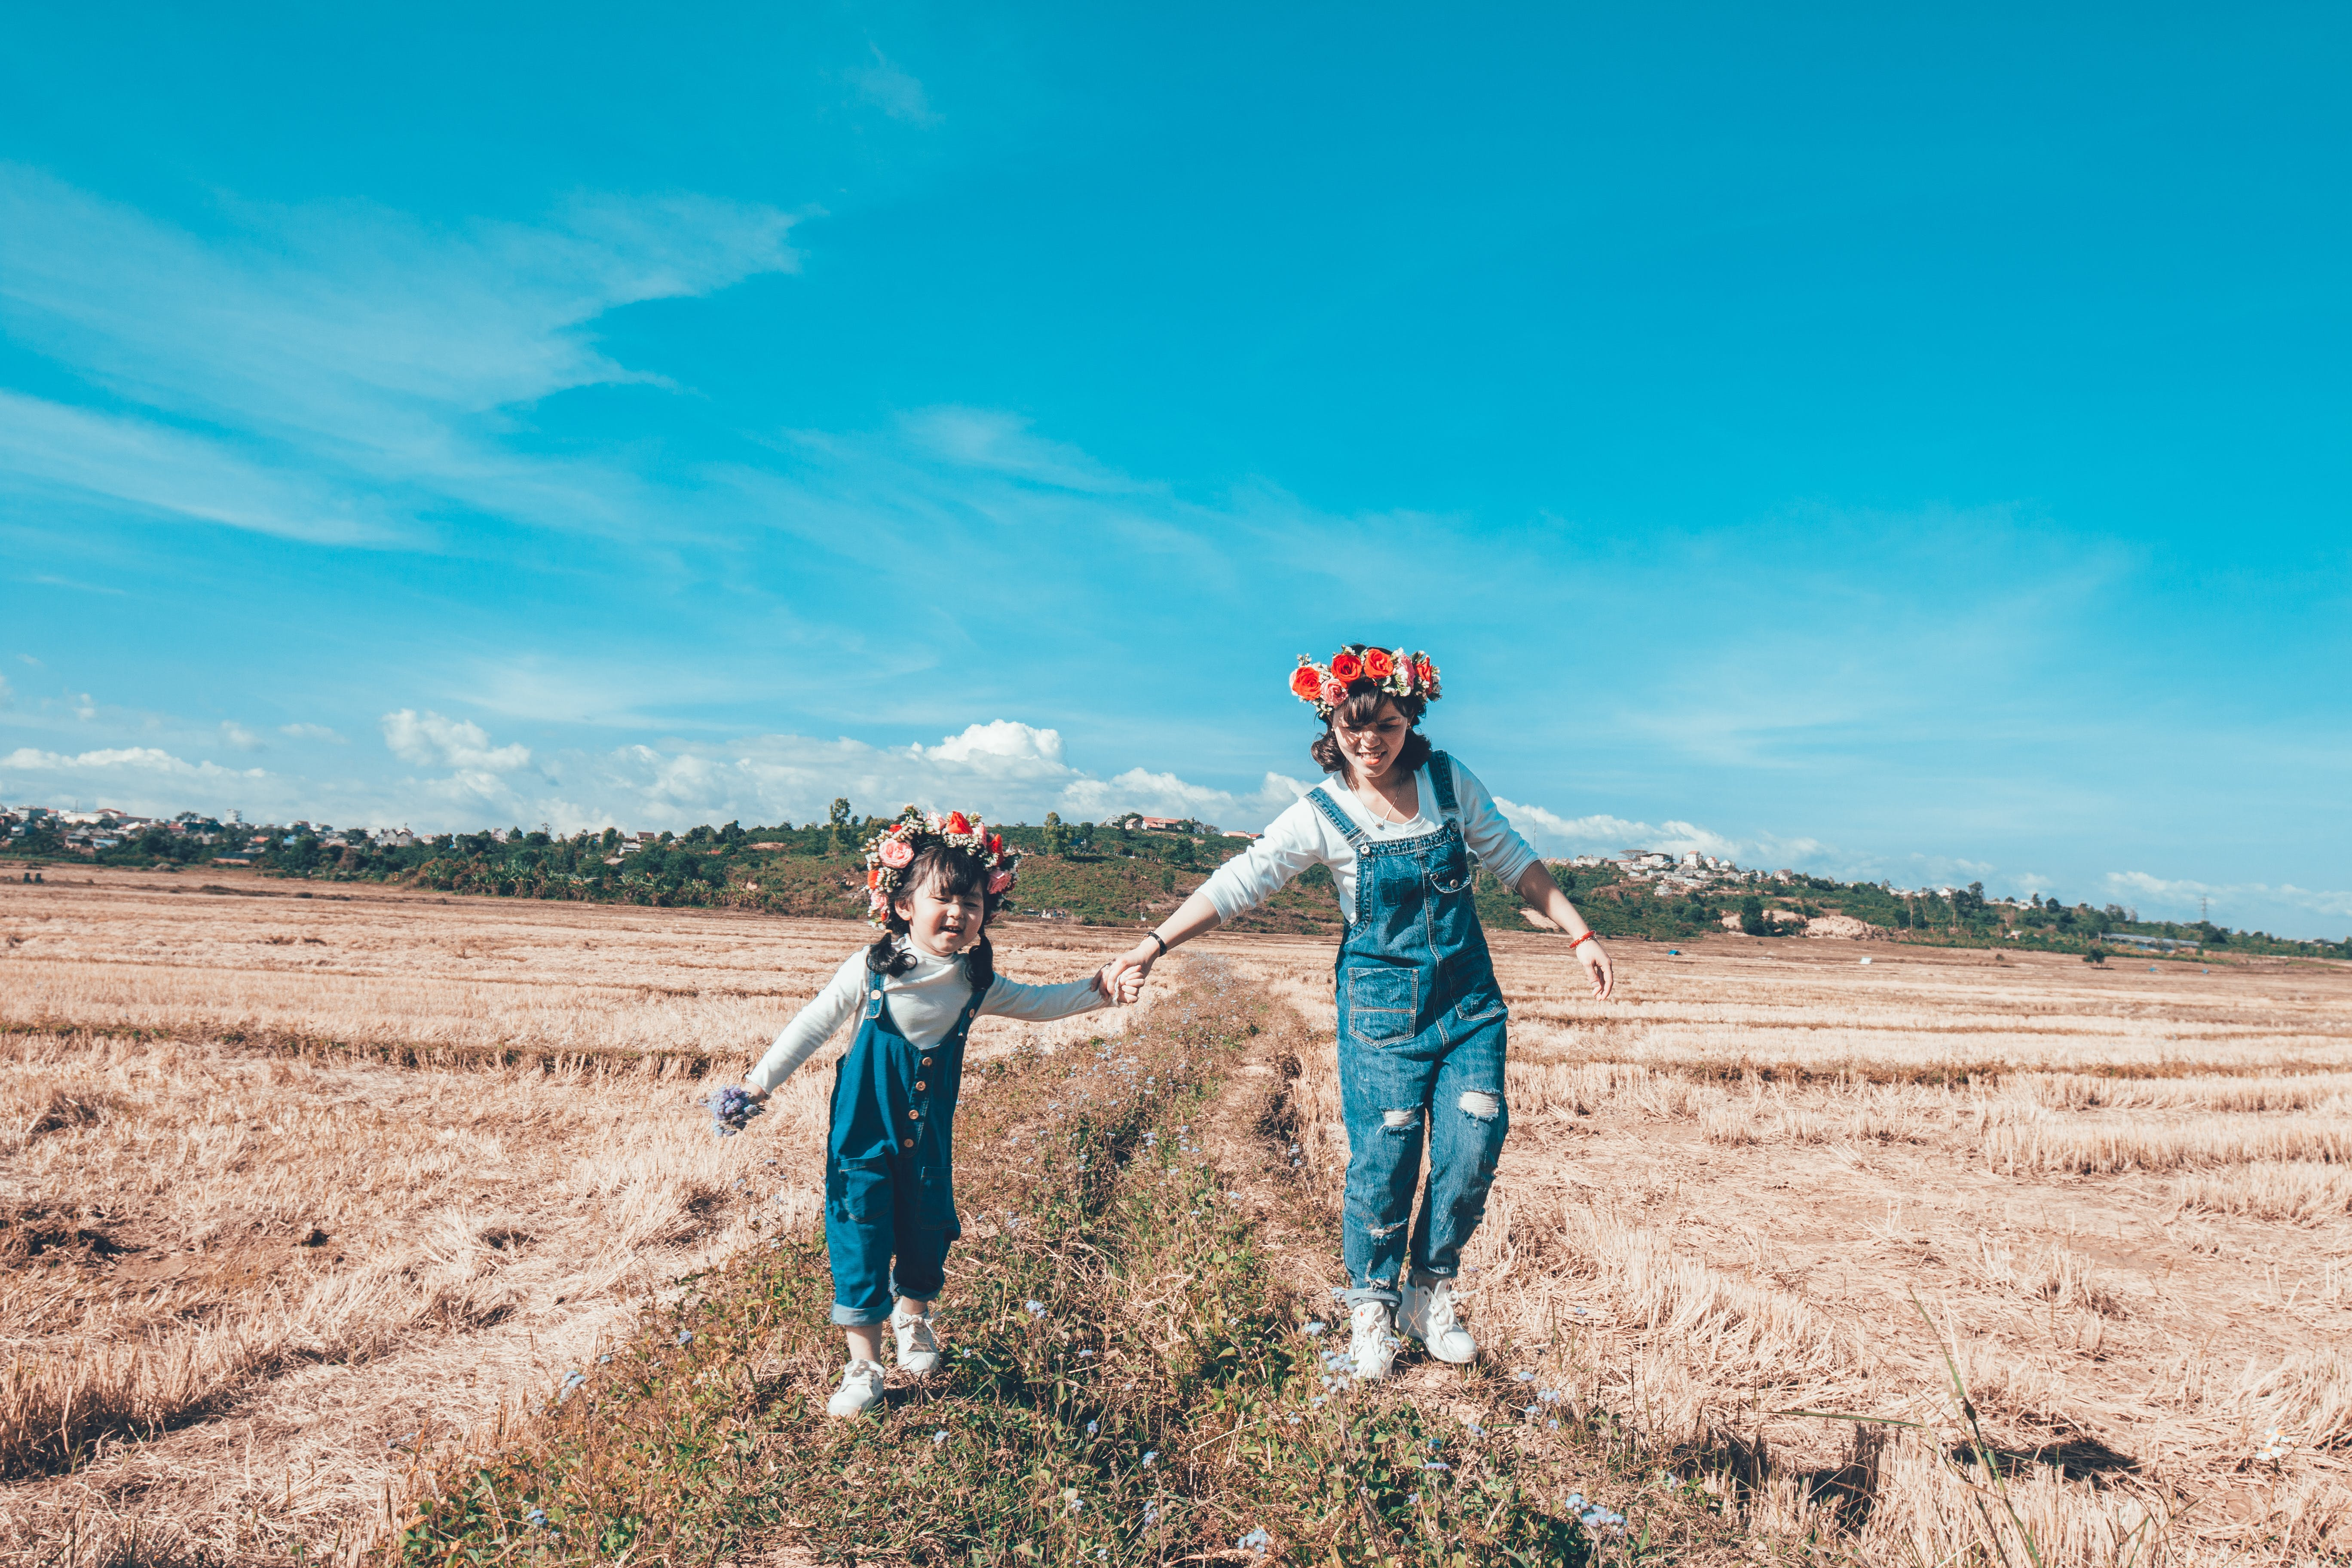 Woman and Girl Doing Hand in Hand Whole Walking on Grass Field